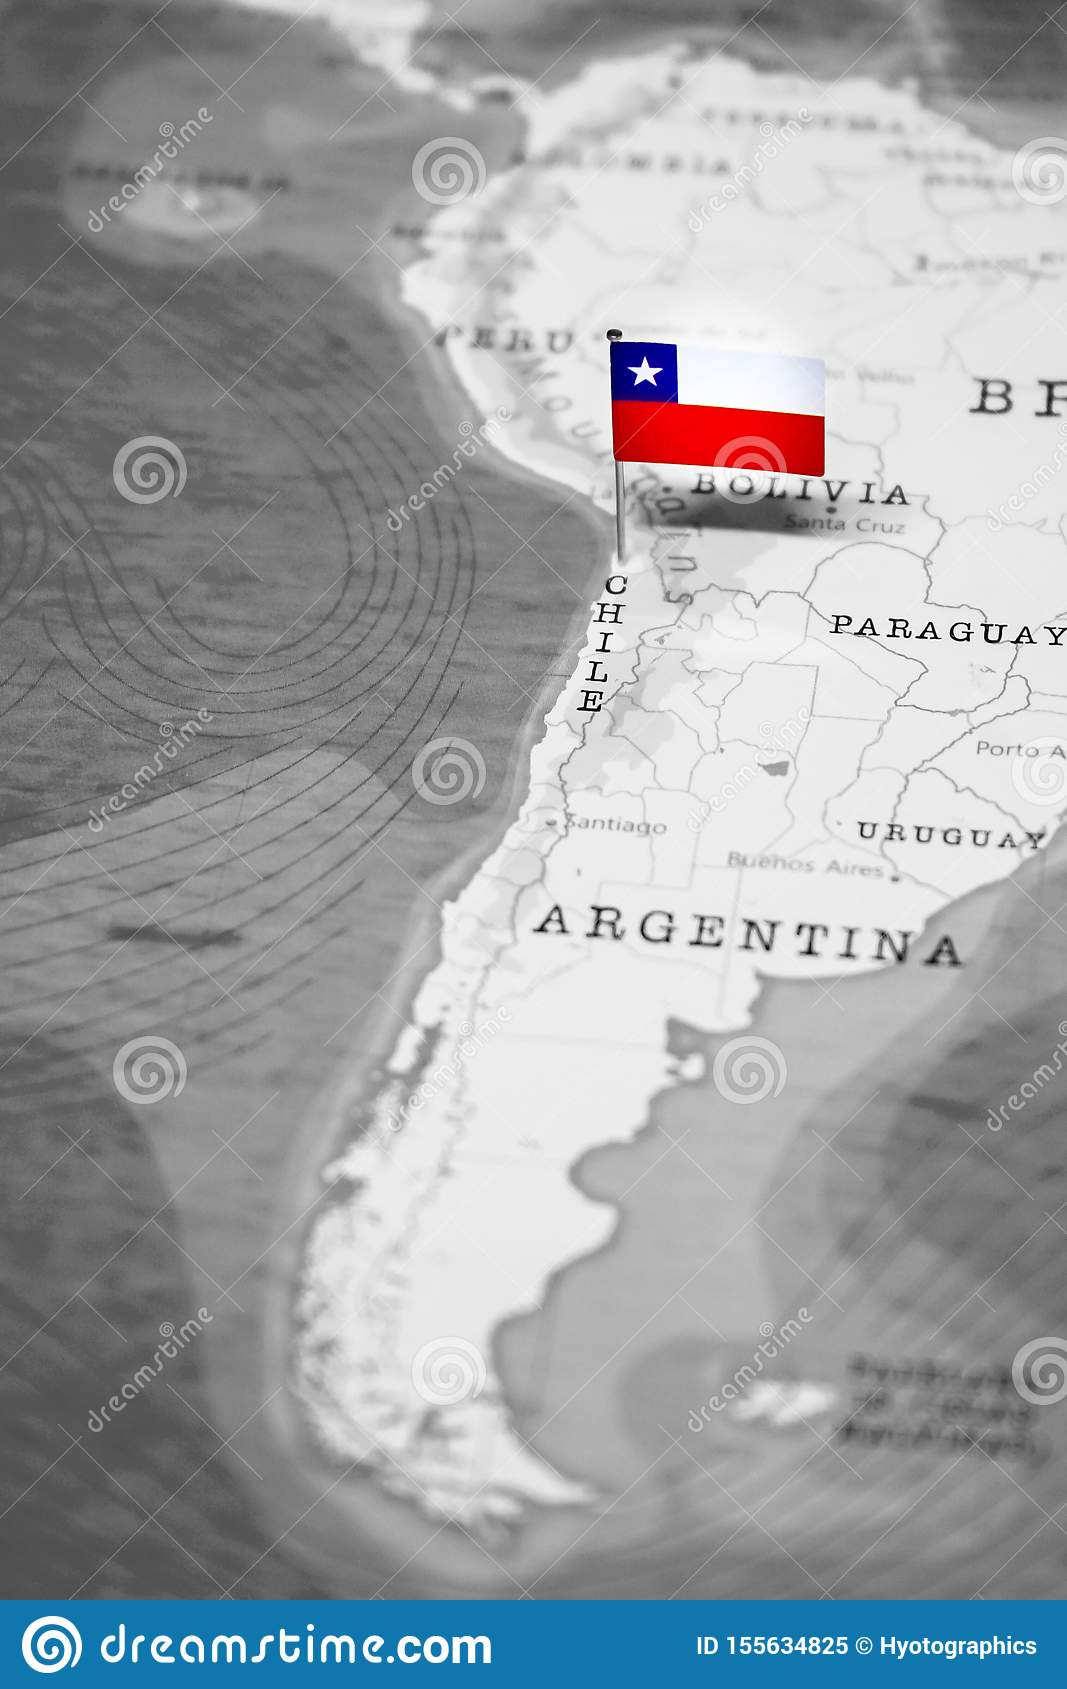 The Flag of Chile in the World Map